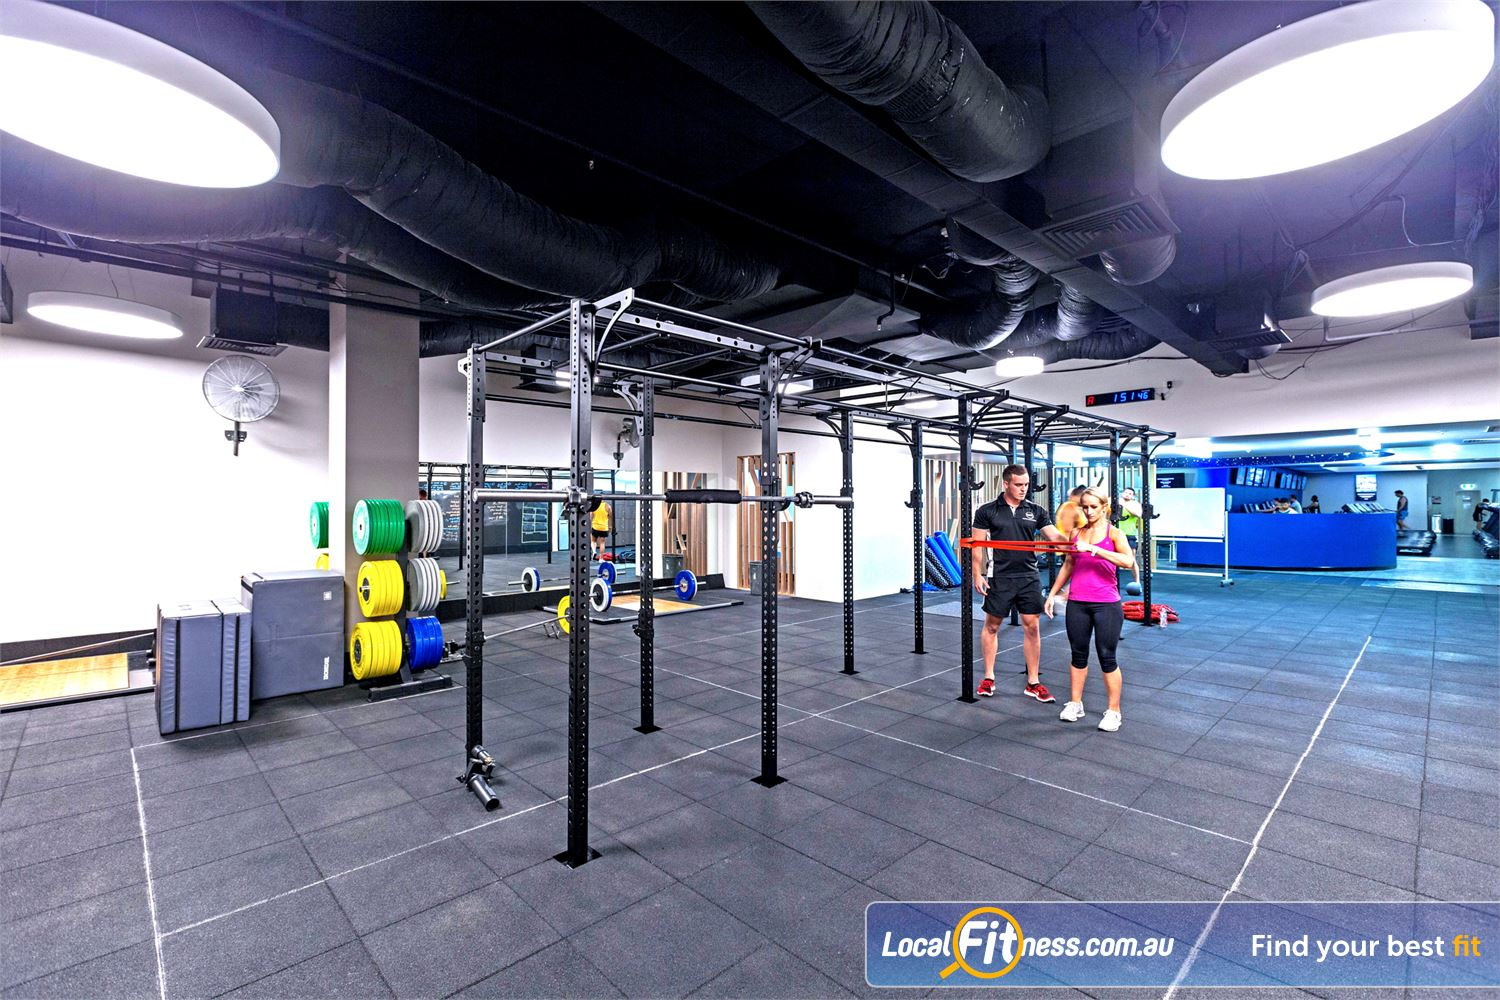 Goodlife Health Clubs Fortitude Valley Goodlife Fortitude Valley gym is state of the art and one of the hottest clubs in the Valley!